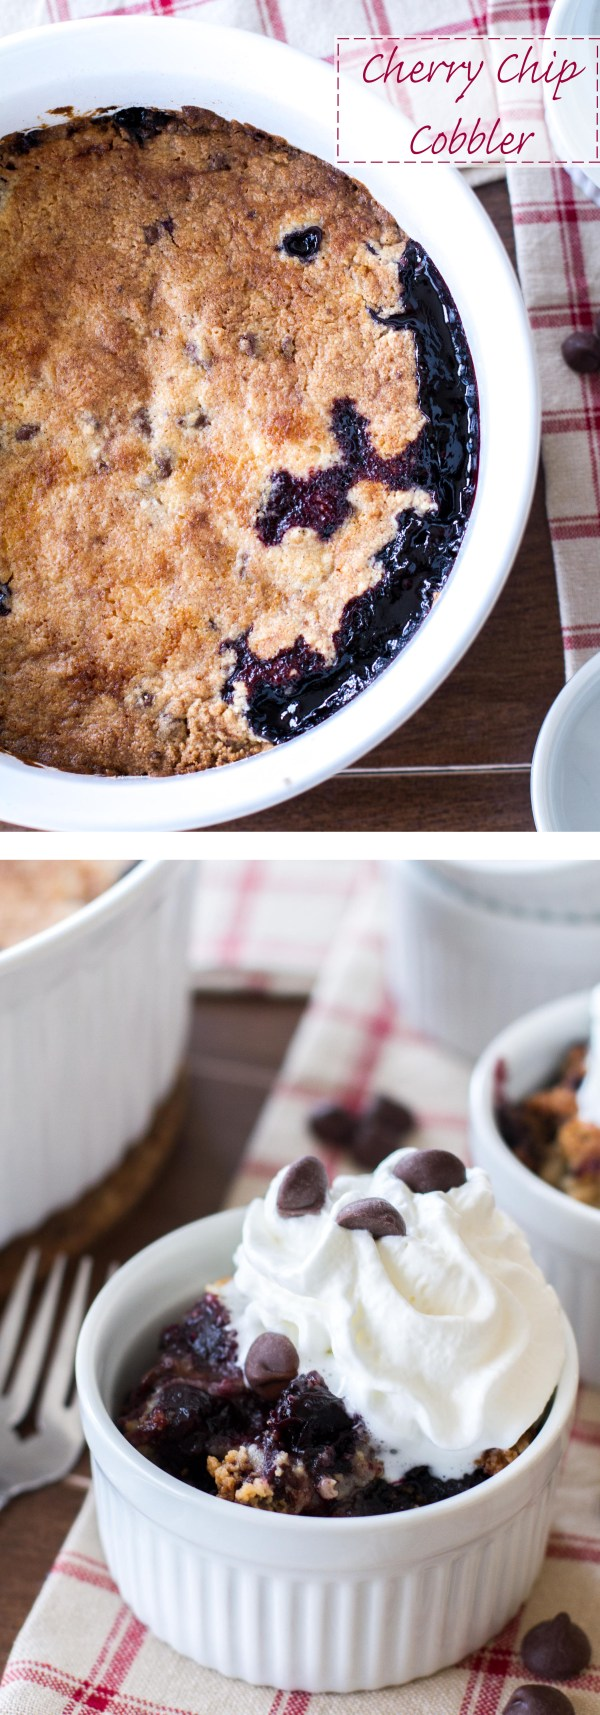 This easy cobbler recipe is full of sweet dark cherries, dark chocolate chips, and topped with a sweet chocolate chip muffin topping!